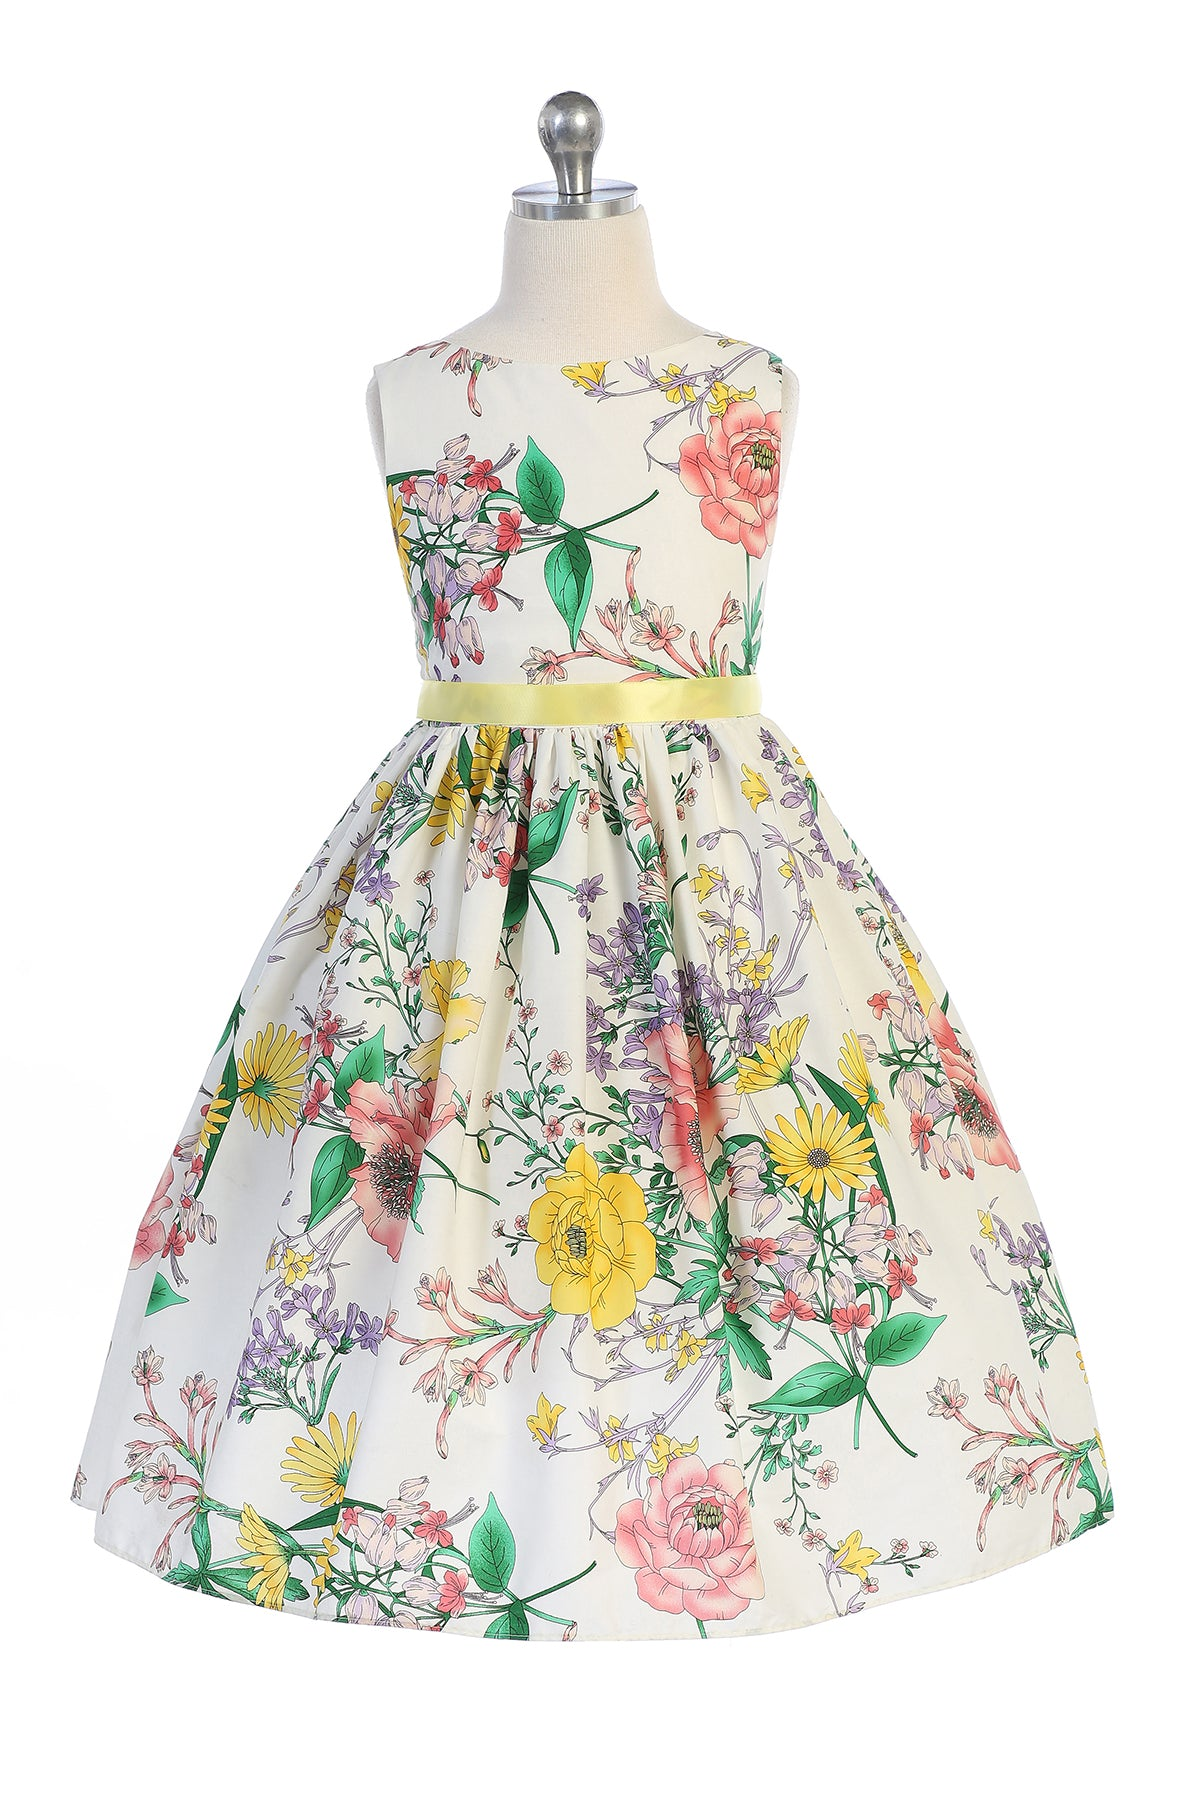 Botanical Flower Cotton Dress